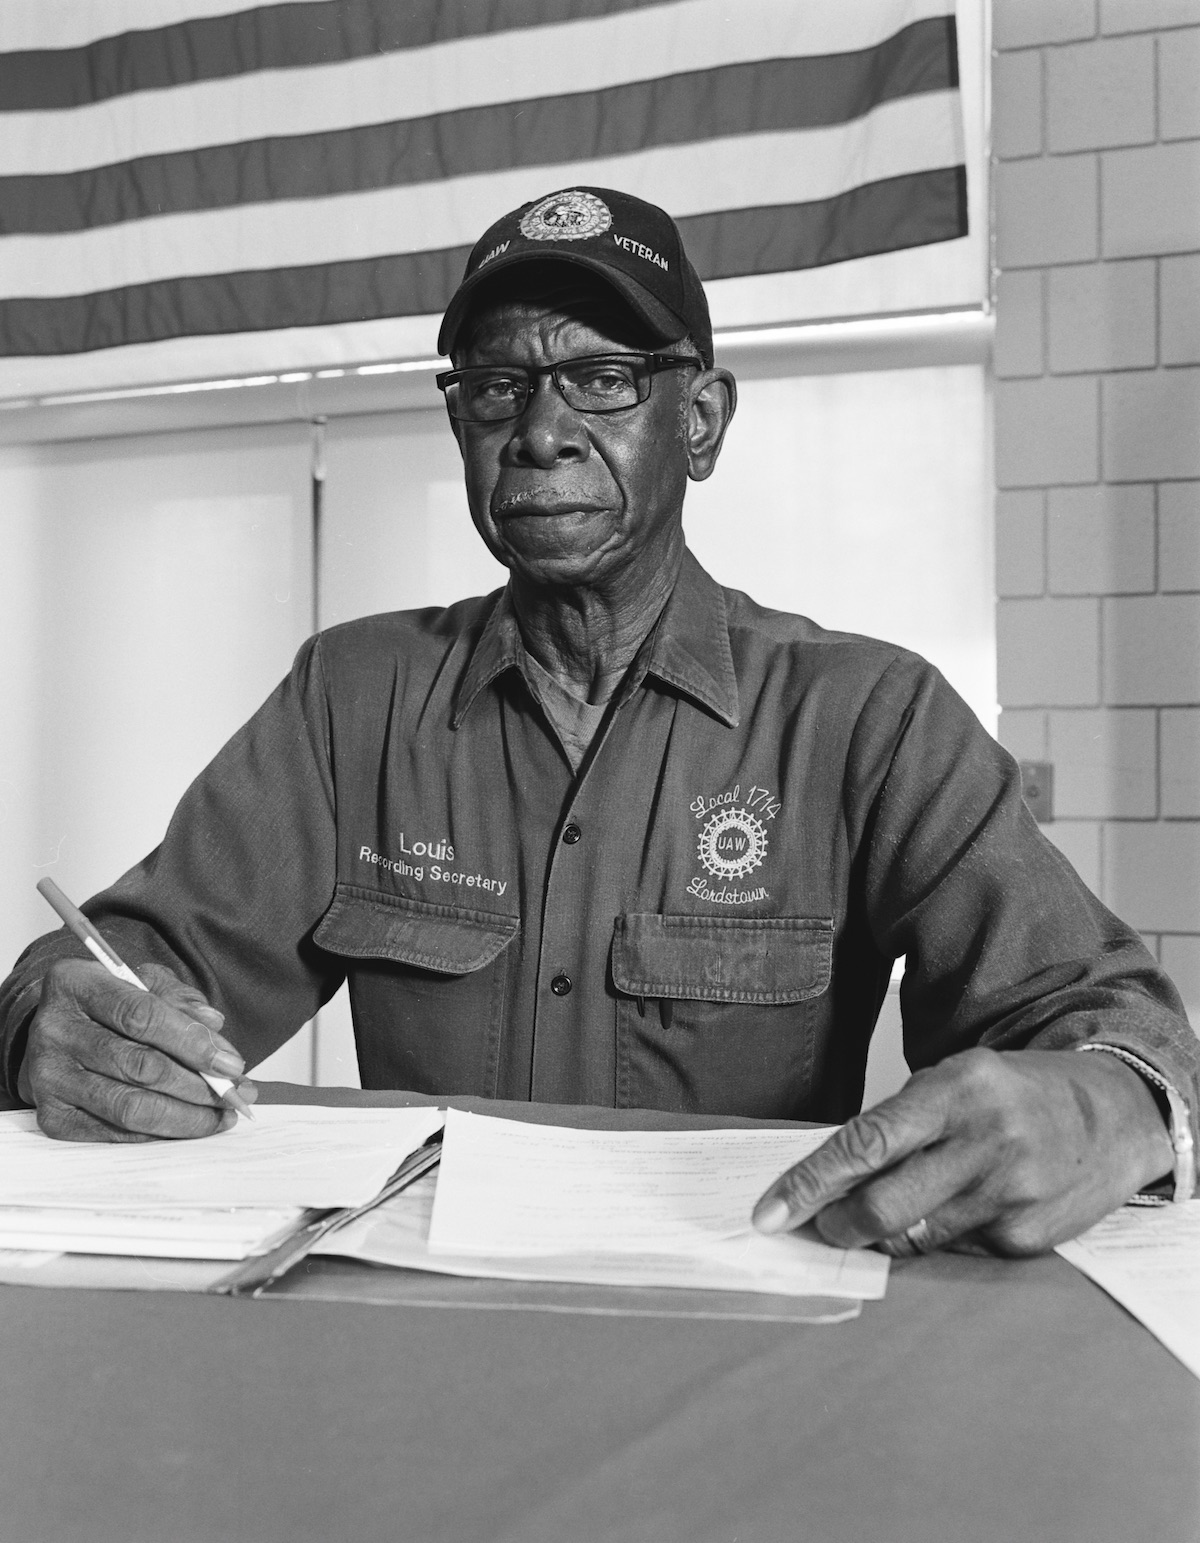 LaToya Ruby Frazier, 'Louis Robinson Jr., Local 1714 Recording Secretary, at UAW Local 1112 Reuther, Scandy, Alli union hall (retiree, 34 years in at GM Lordstown Assembly, die setter), Lordstown OH,' 2019.